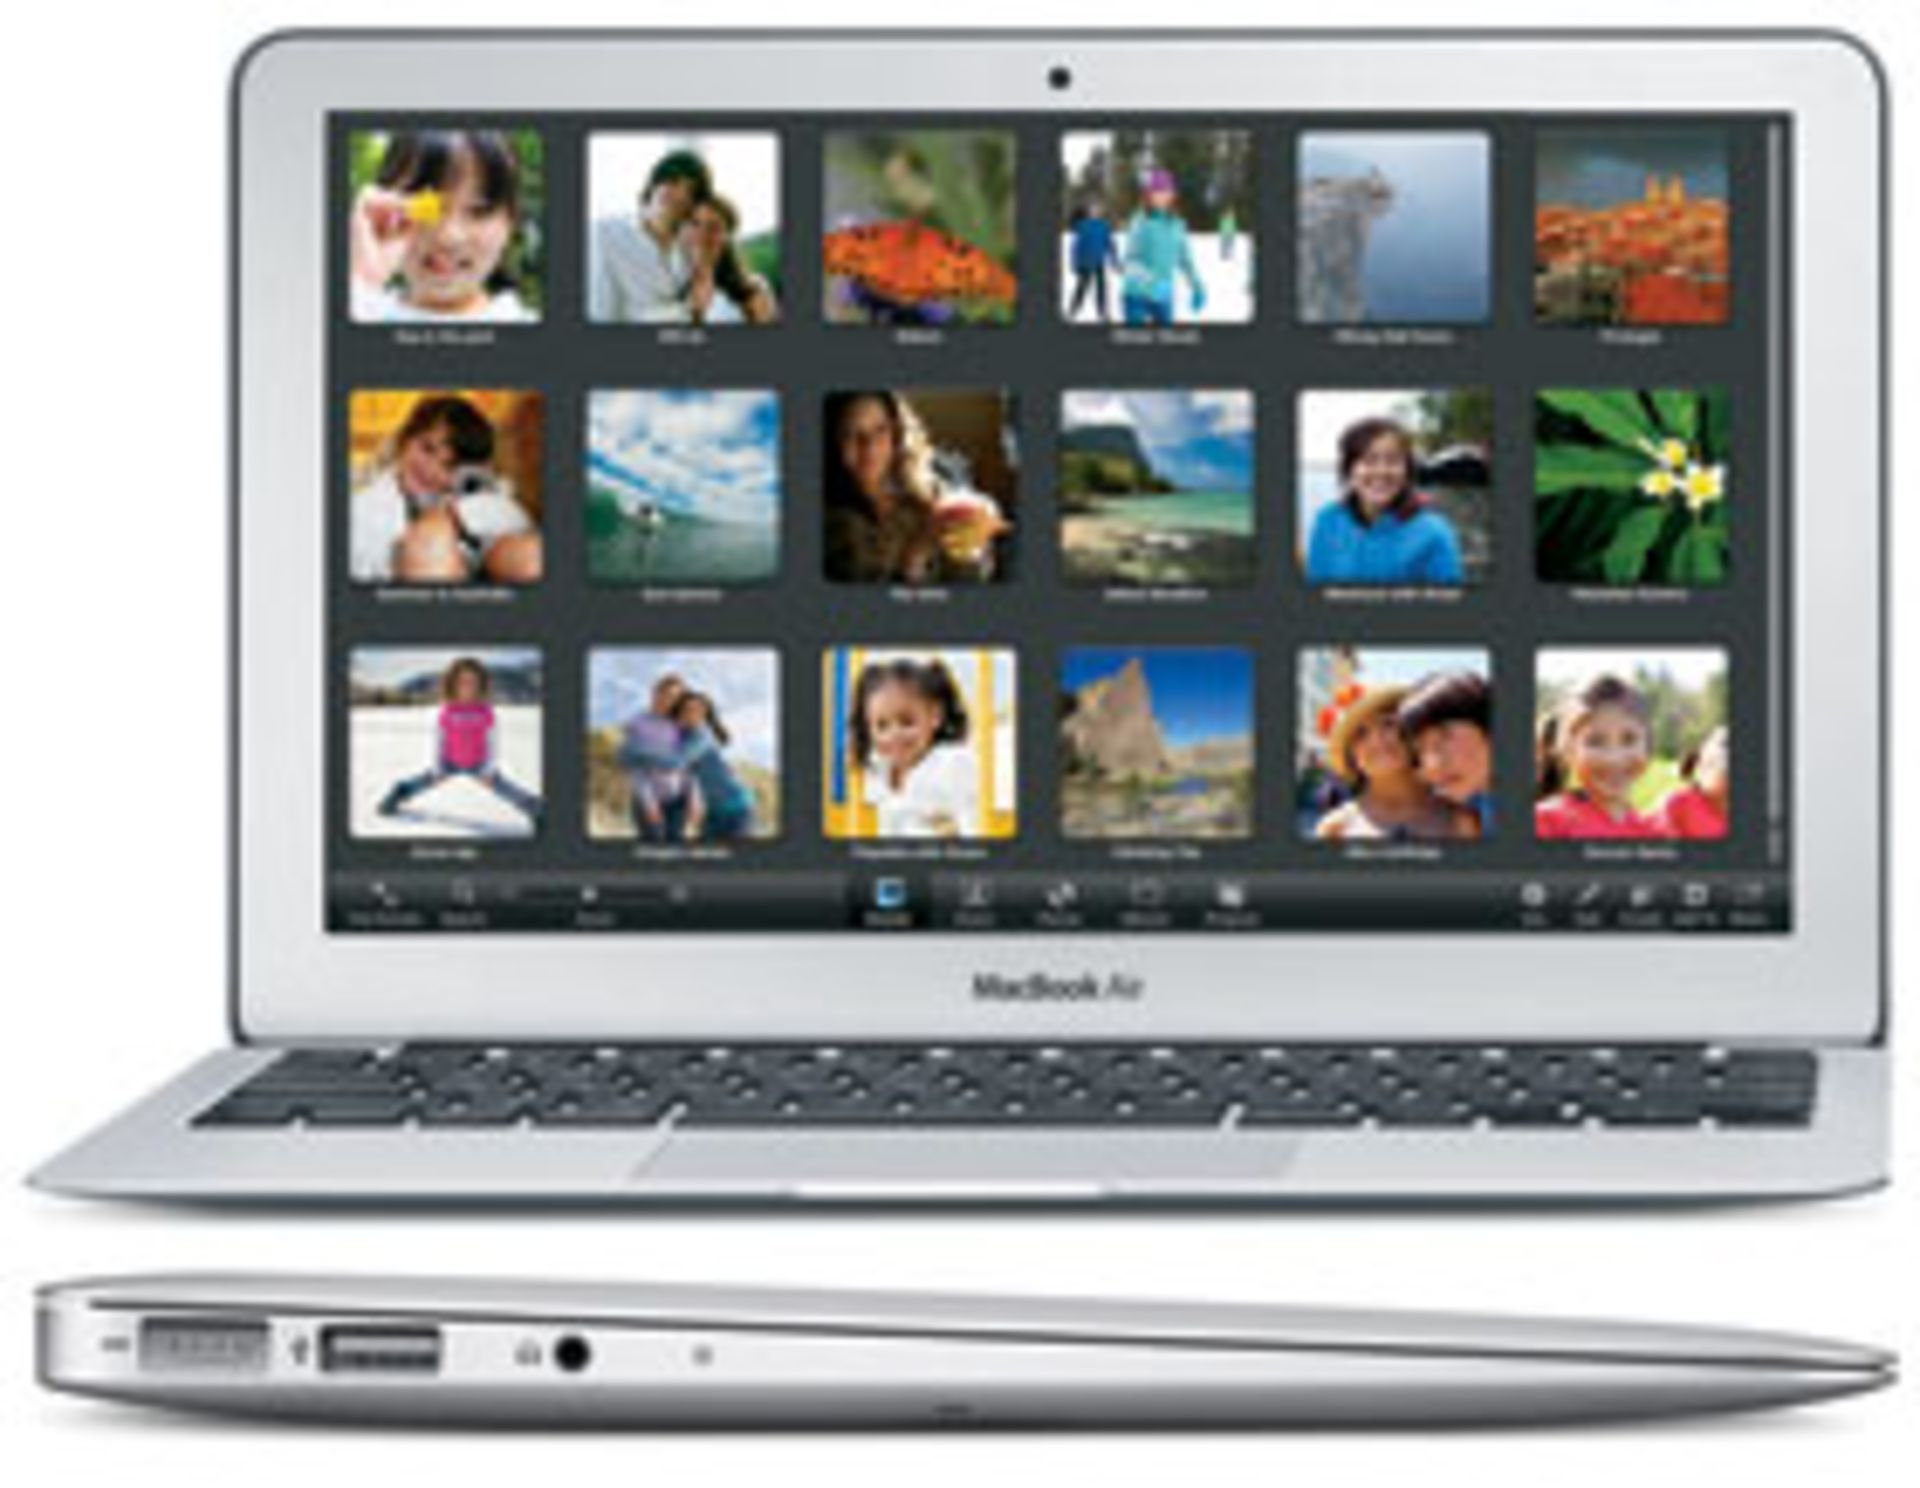 Lot 60041 - V Grade B Macbook Air 11.6 Inch Core 2 Duo - 64GB SSD - A1370 - Available Approx 7 Working Days